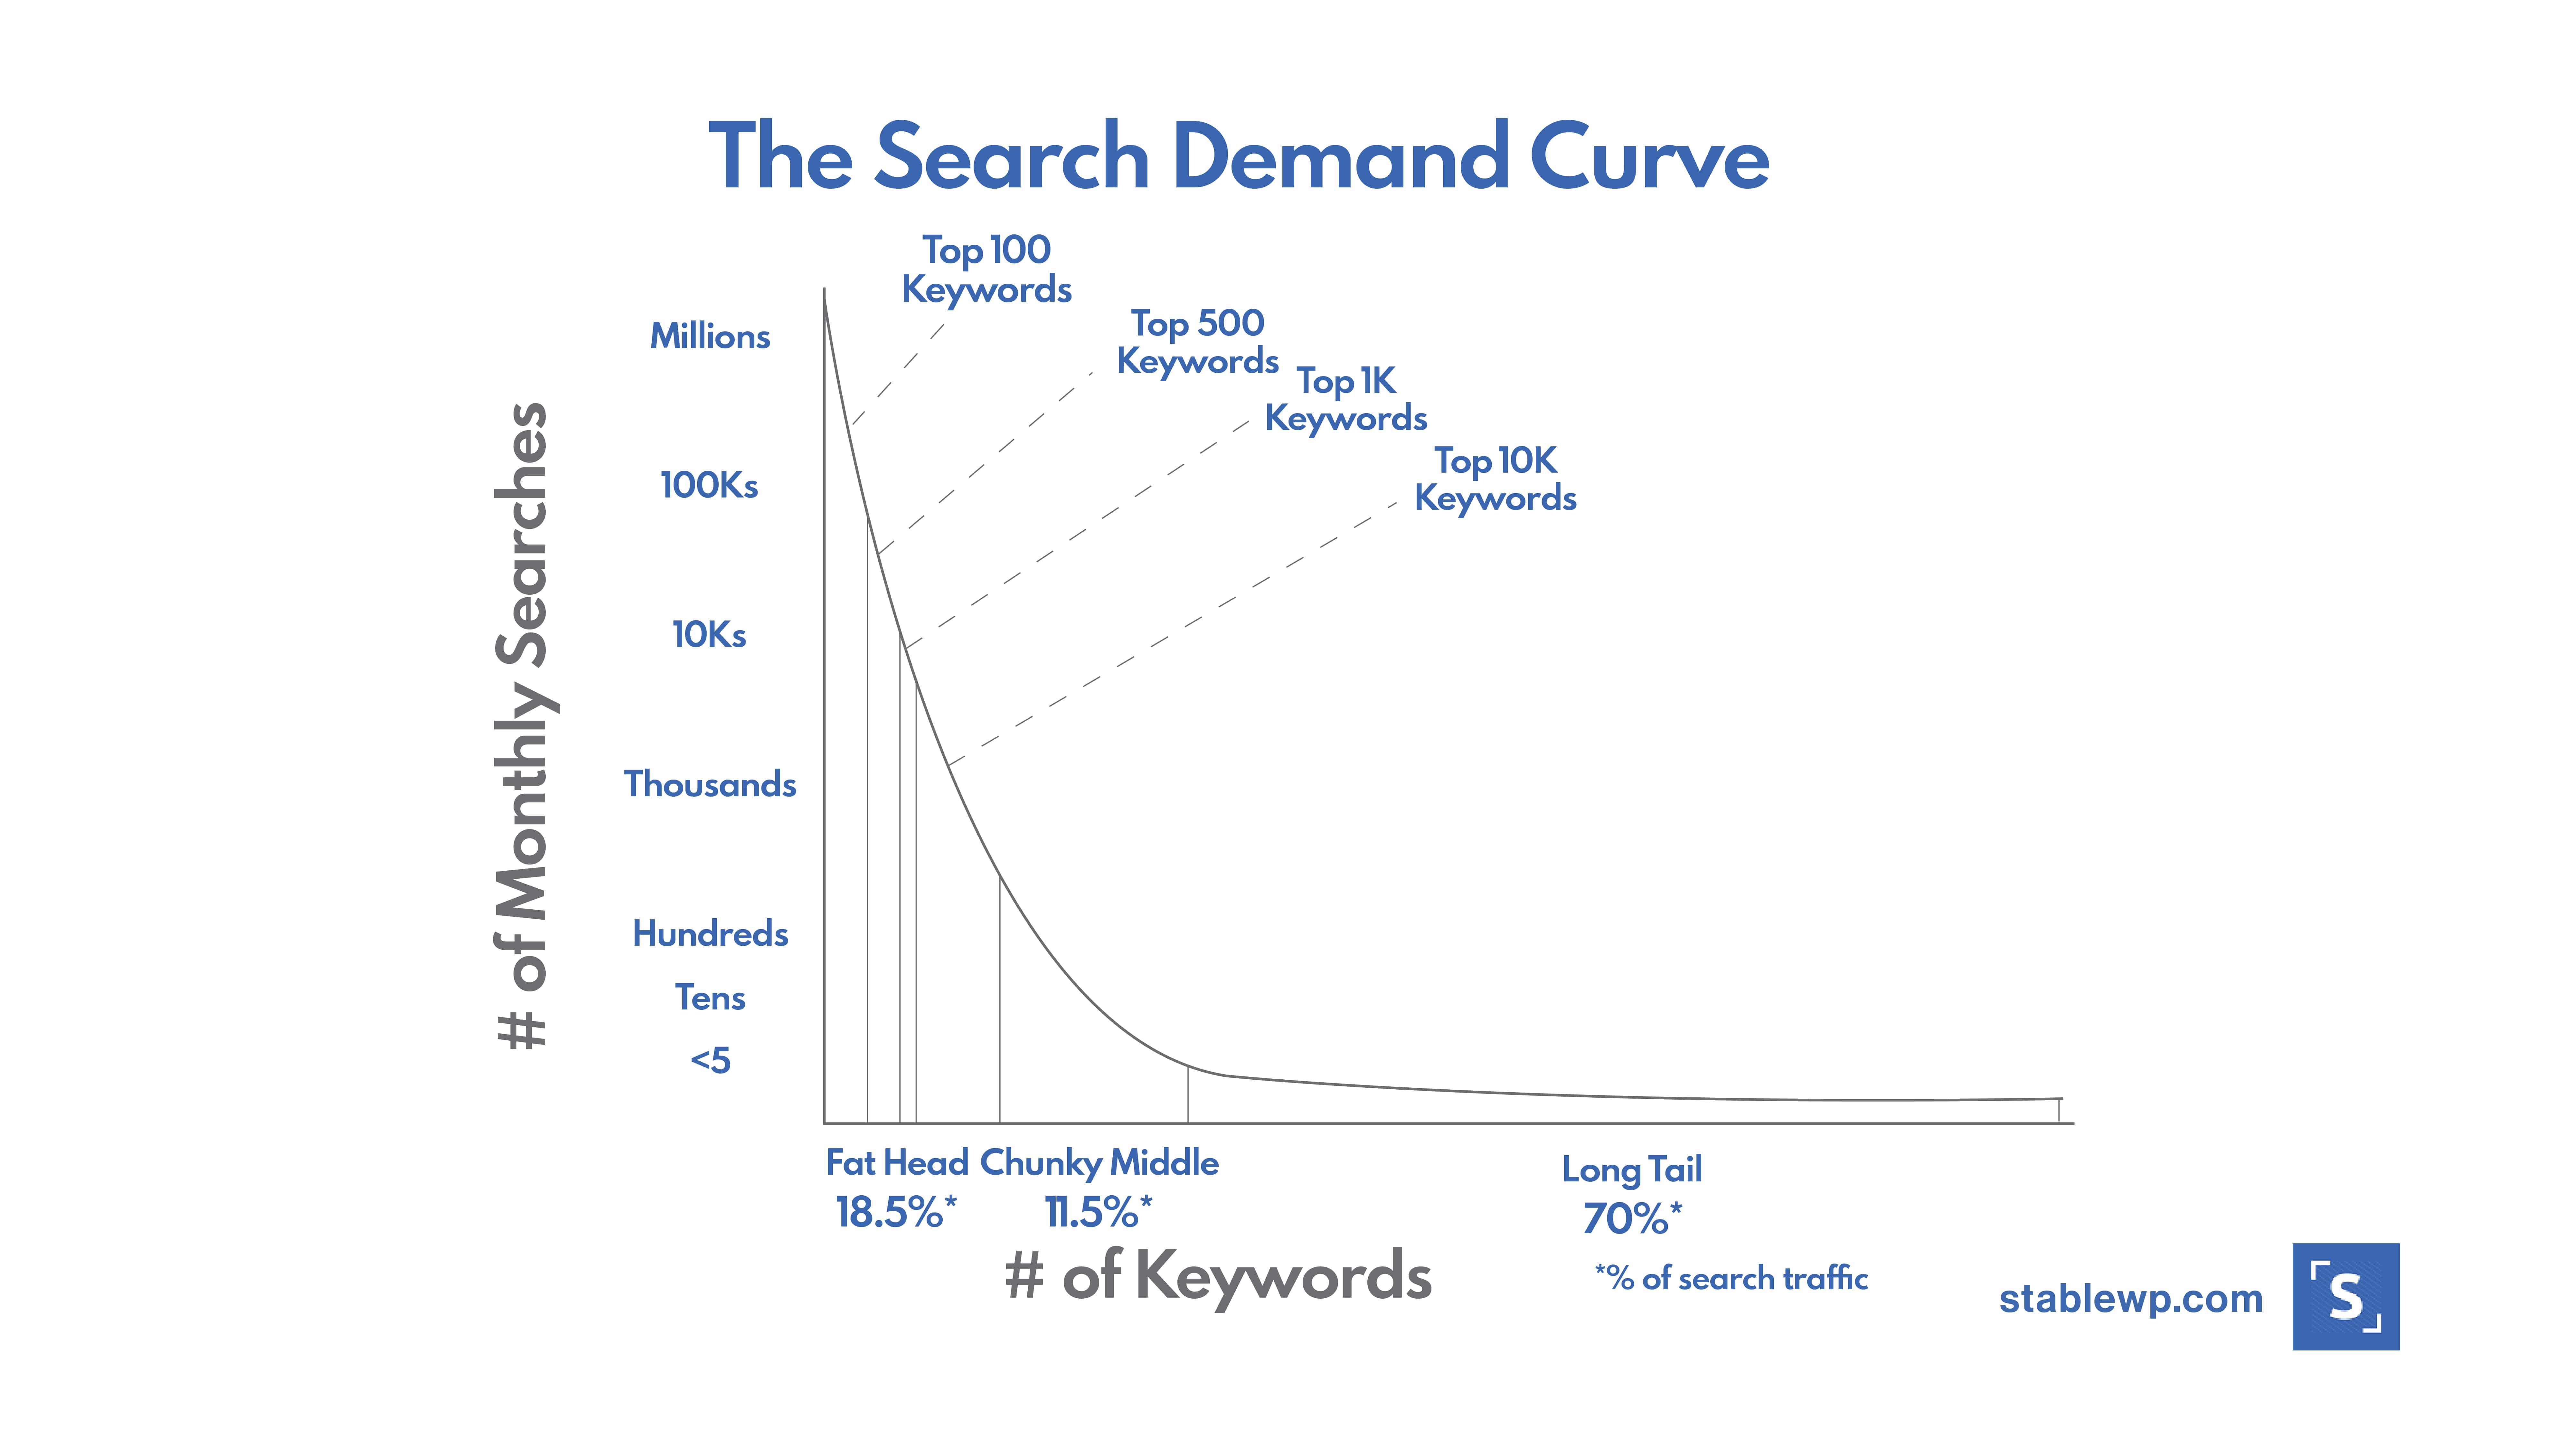 Screenshot of a search demand curve showing the search volume depending on the keyword lenght